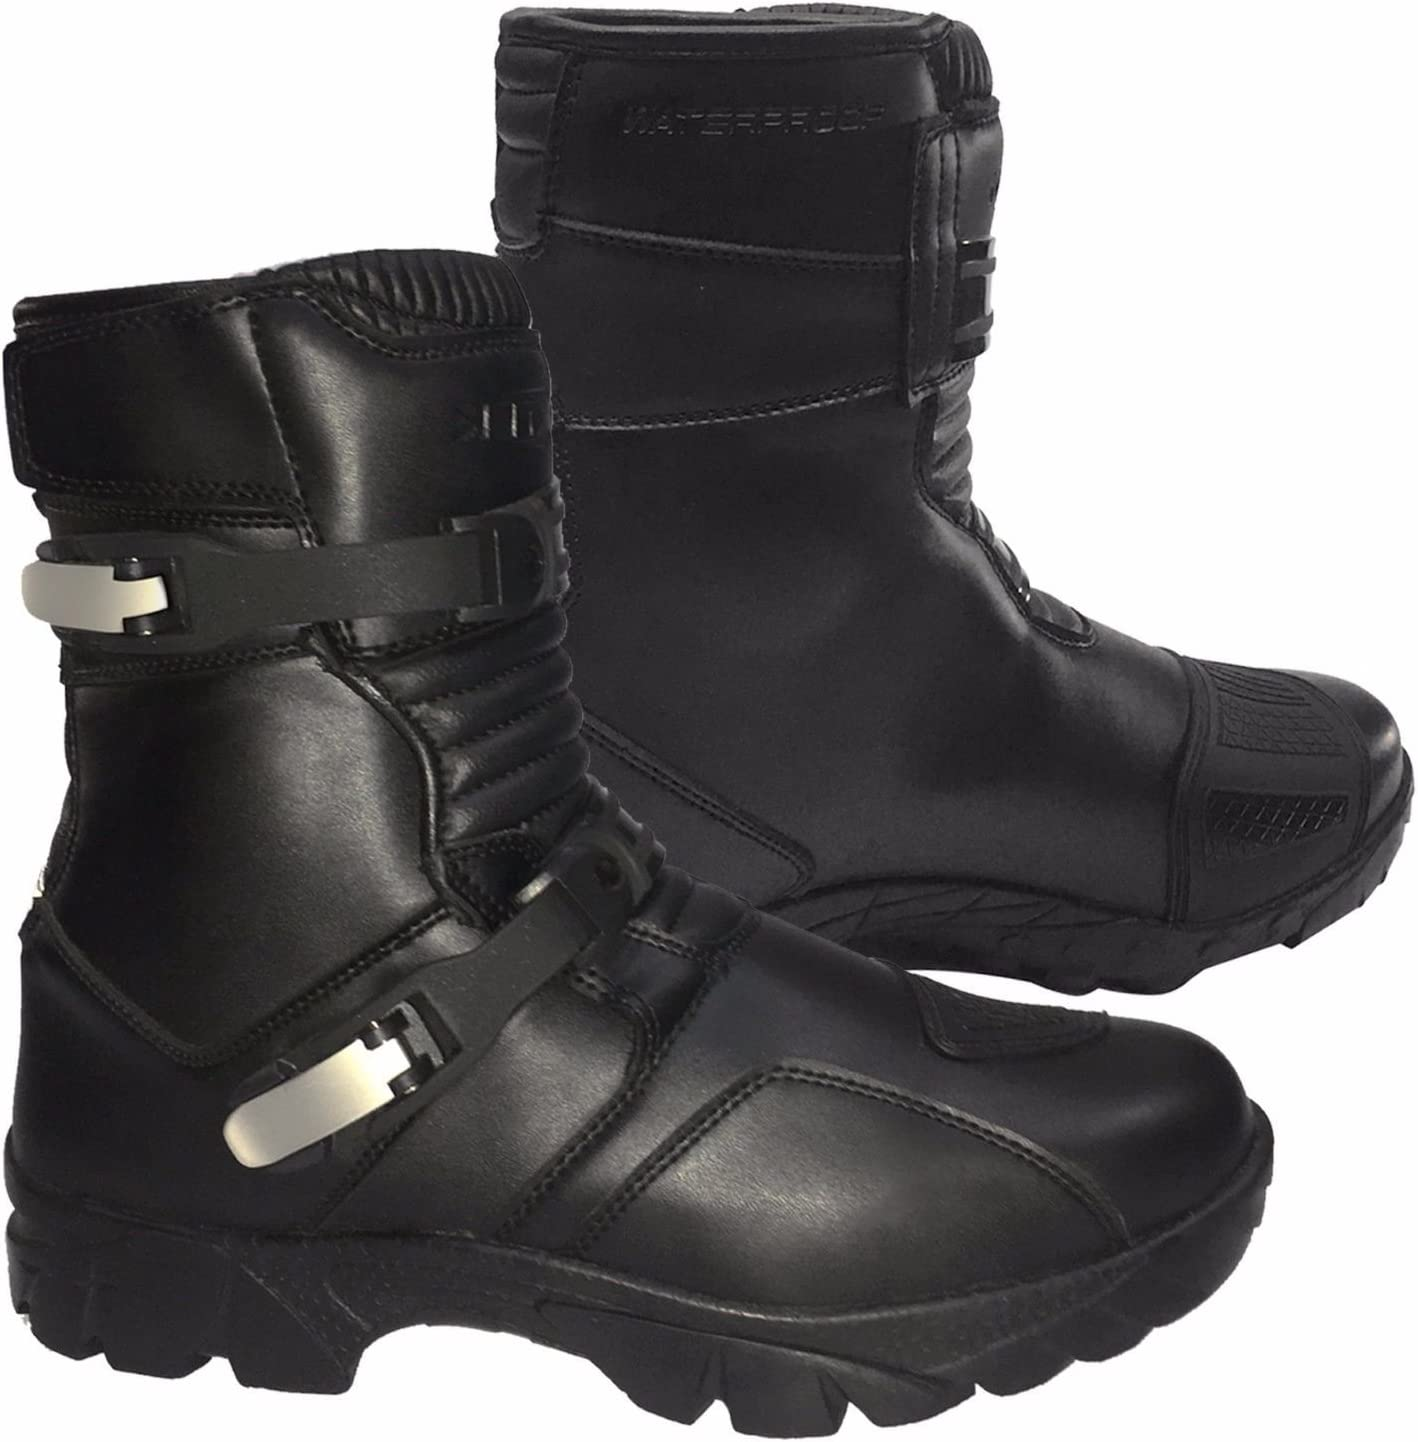 Genuine Leather Waterproof Motorbike Boots Off Road Adventure Touring Motorcycle Shoes Short Mid Half Ankle Casual Racing Sports Touring Cruise PROFIRST BT-81 UK 10 // EU 44 Full Black